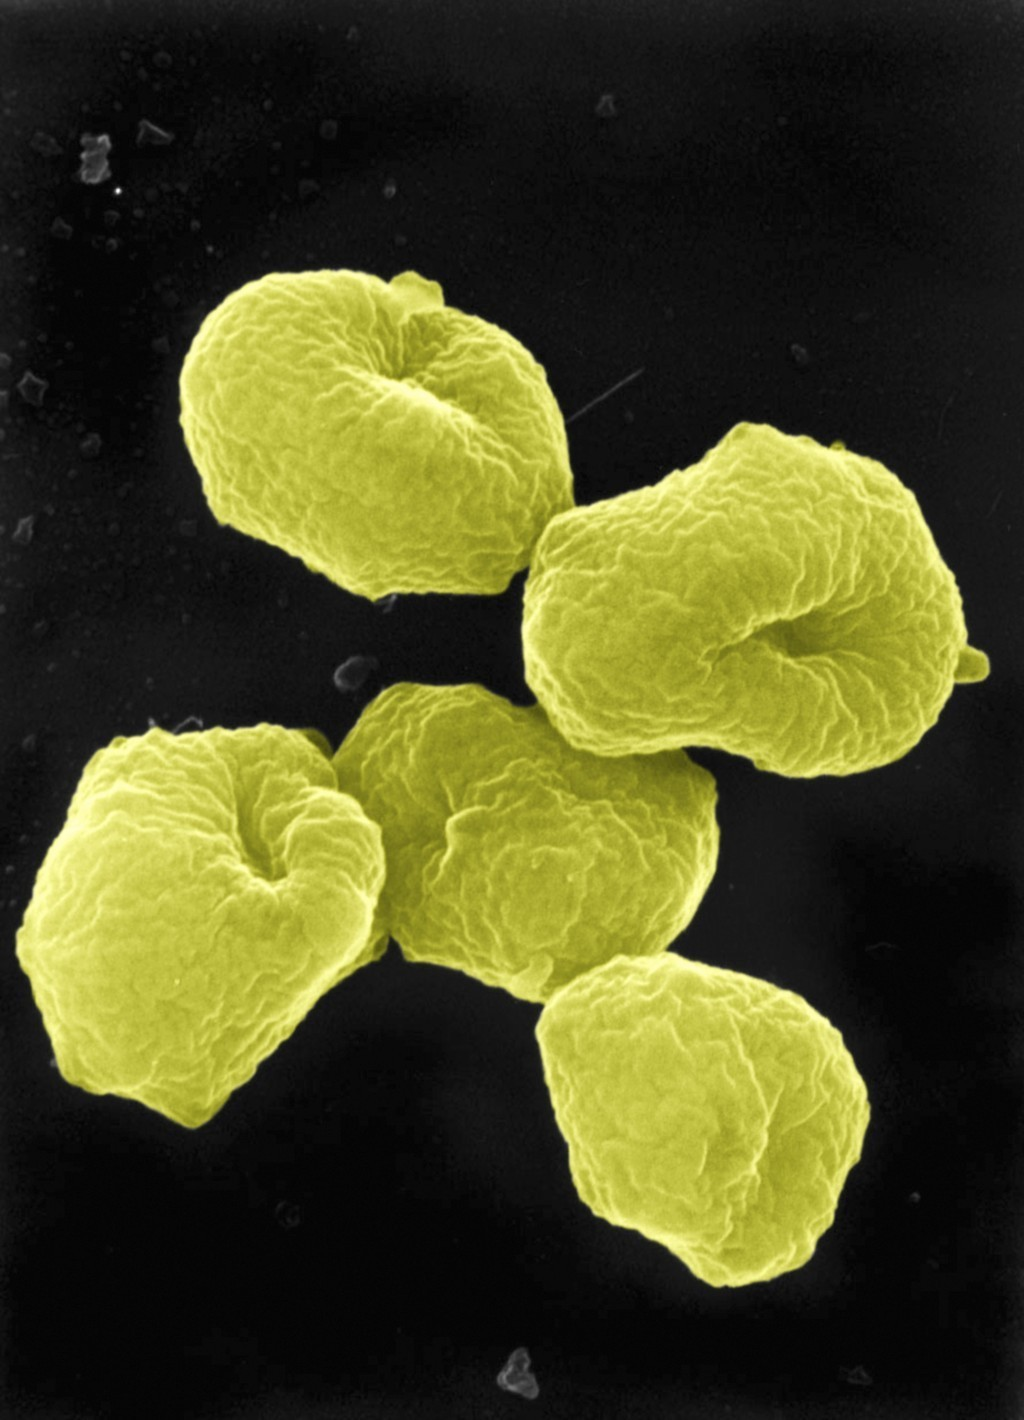 About Microbiology – Archaea